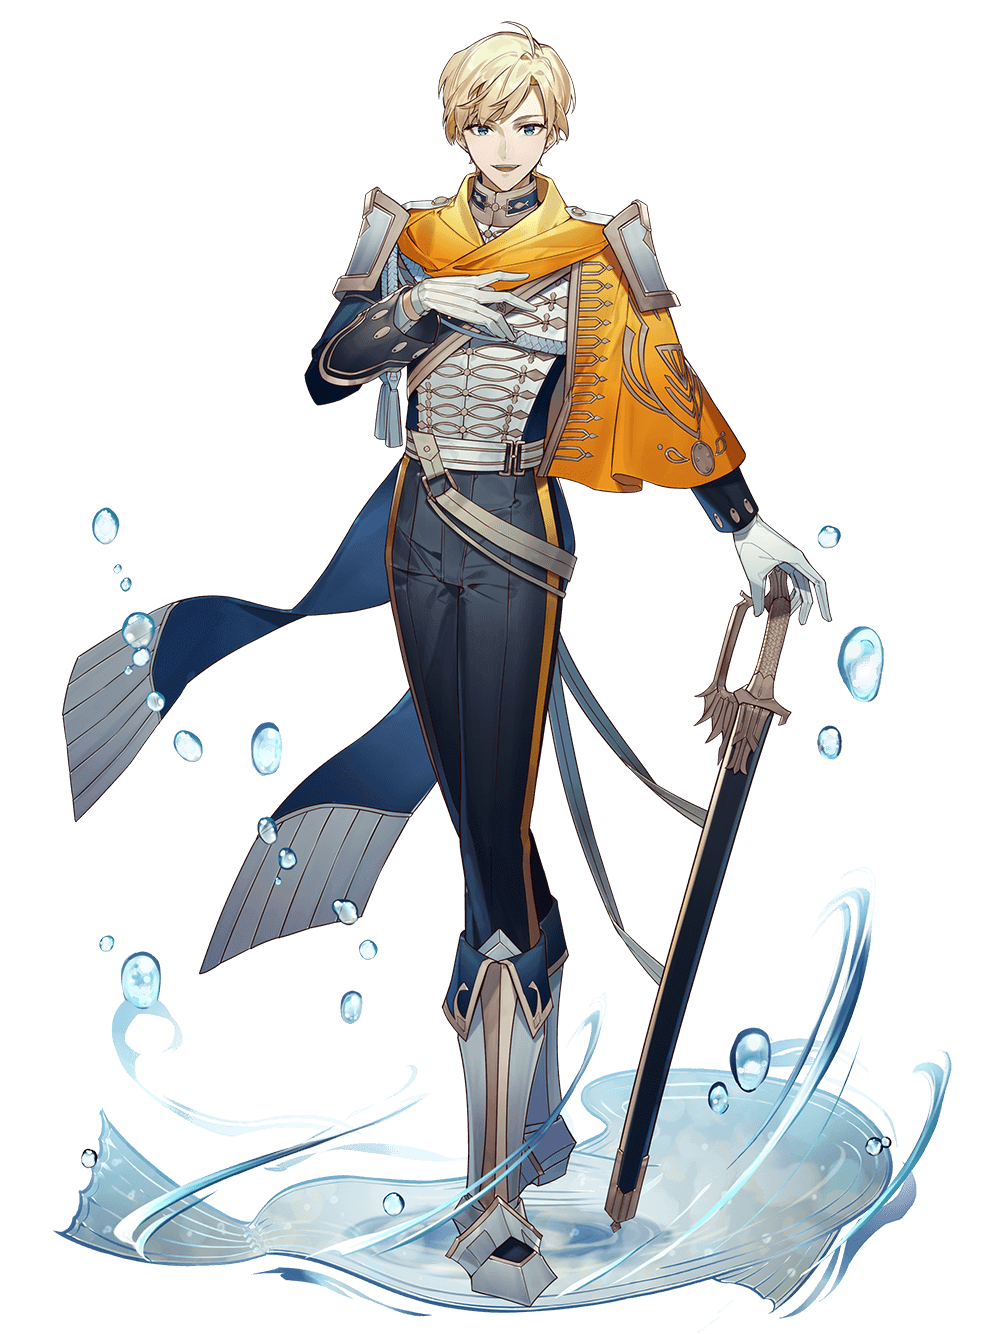 Pin by PeacoxVILIVS on 食之契約 in 2020 Food fantasy